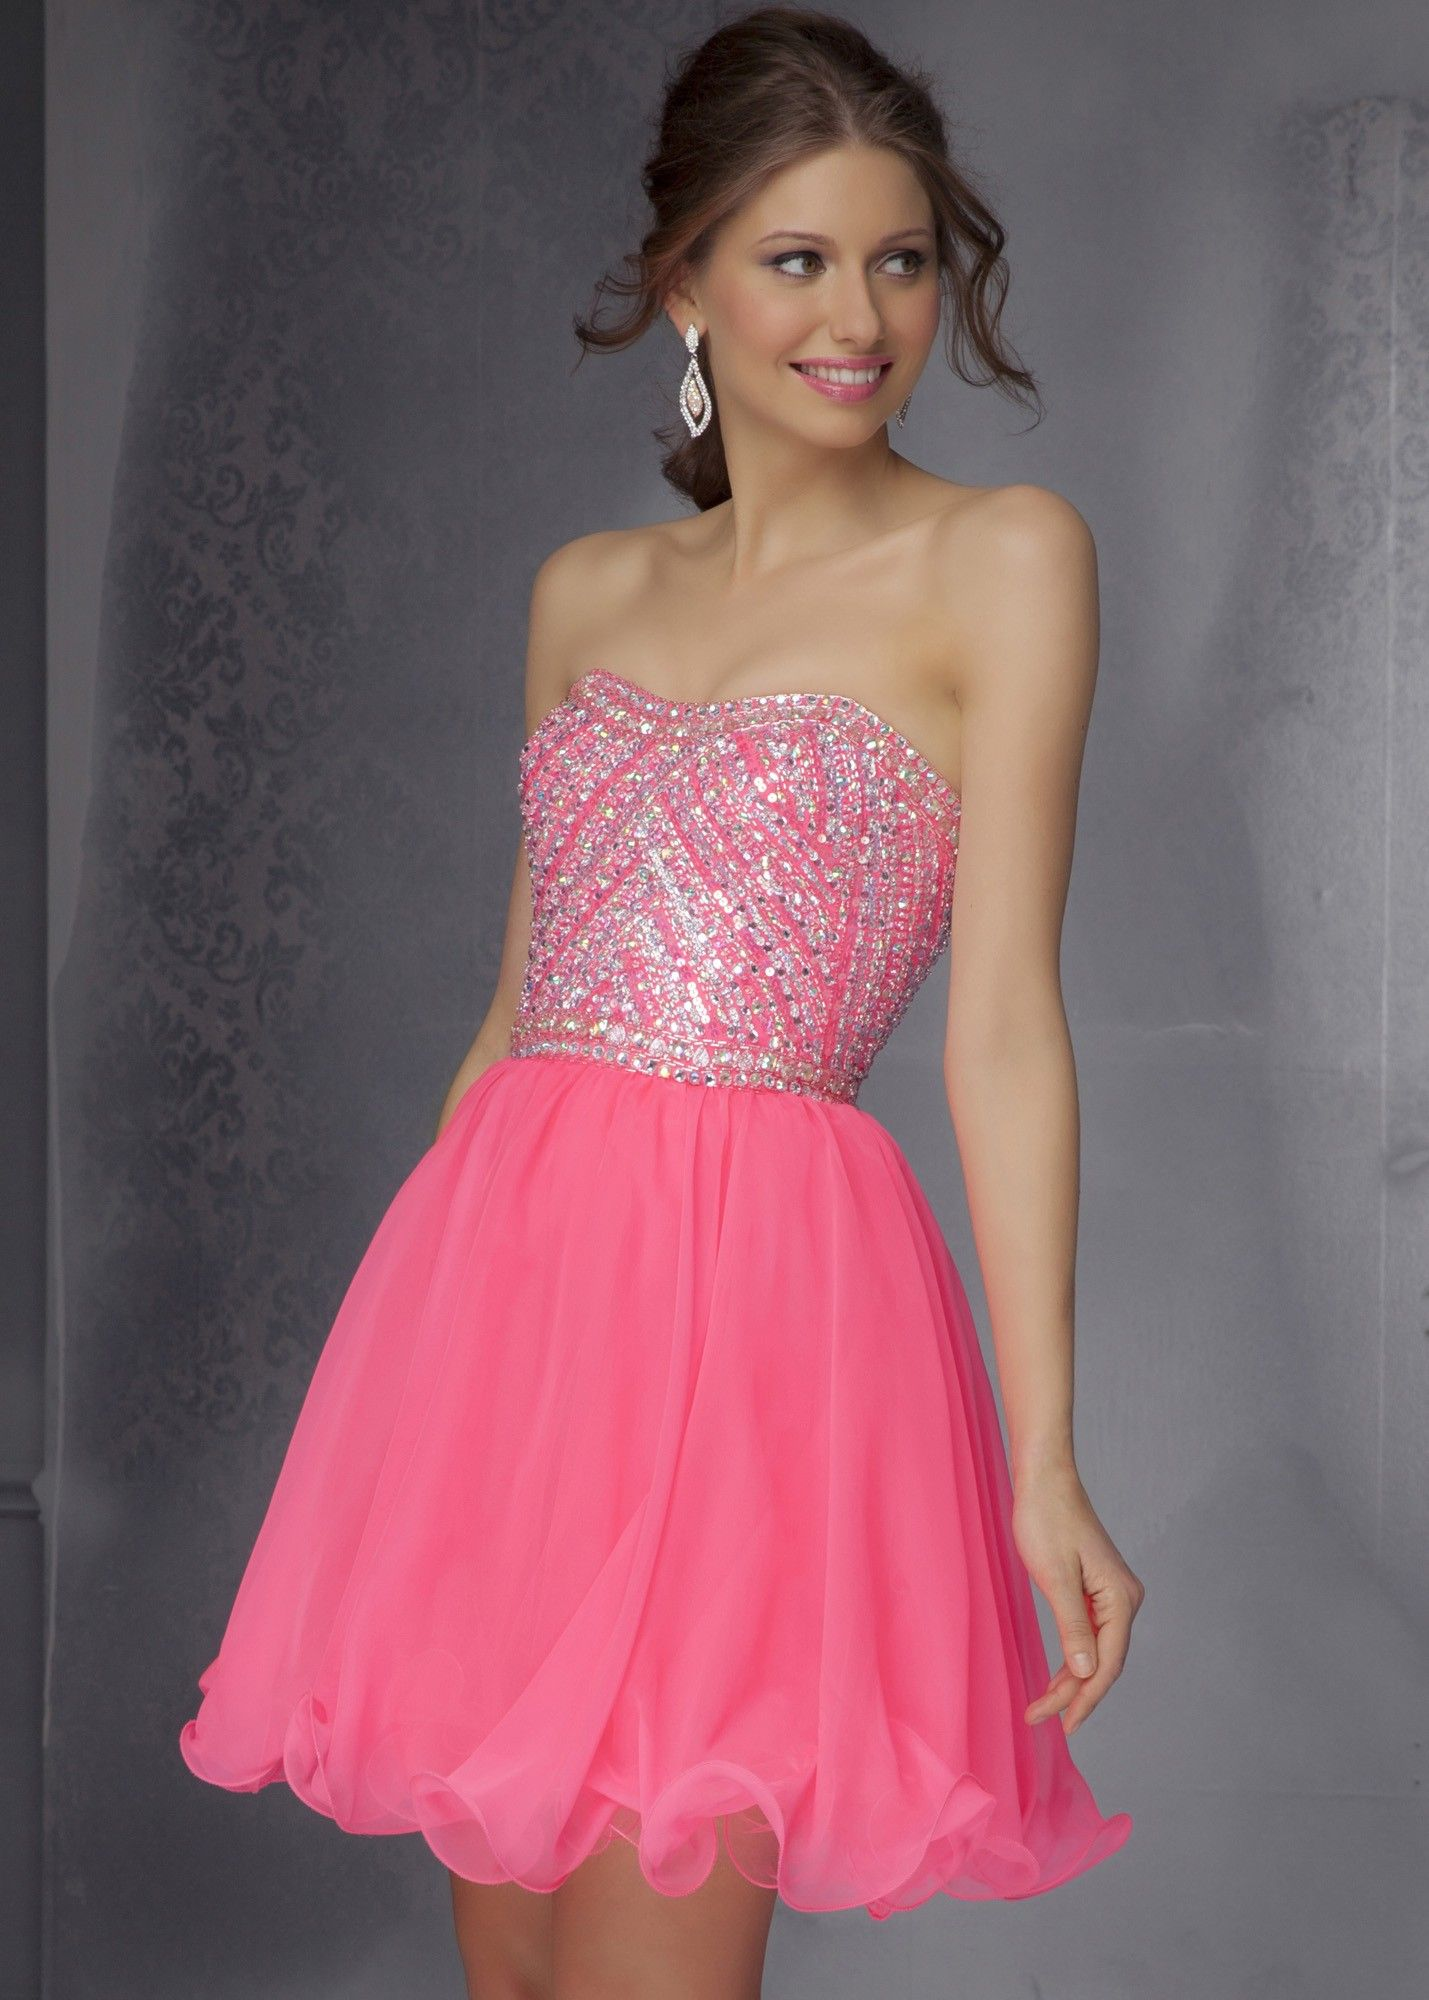 Sticks & Stones by Mori Lee 9282 Neon Pink Party Dress | Homecoming ...